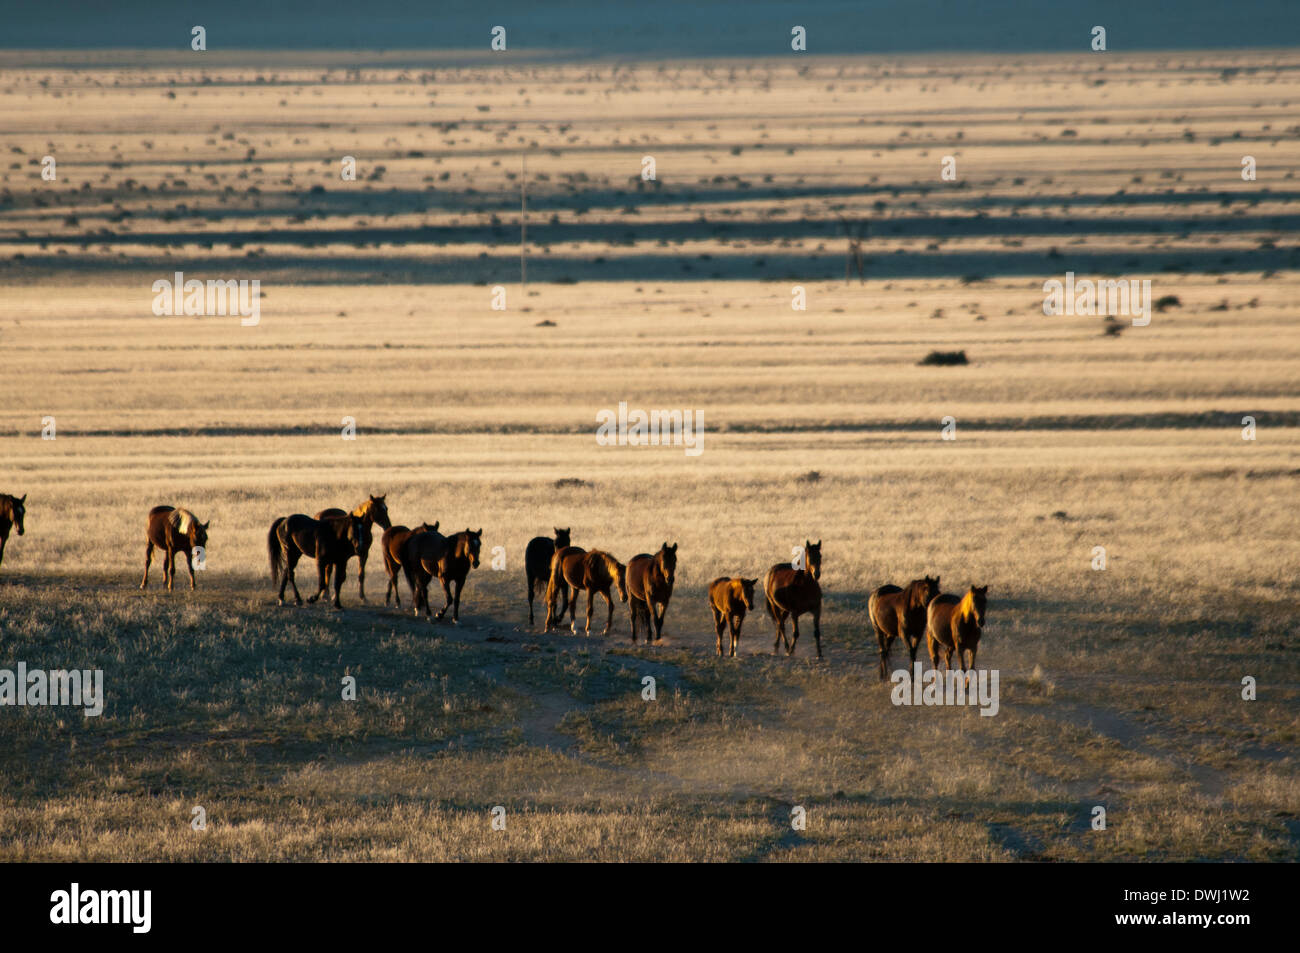 A Herd of Wild Namibian Horses, Equus ferus caballus, walking in a line at the Garub Waterhole at Aus, Namibia, Africa - Stock Image